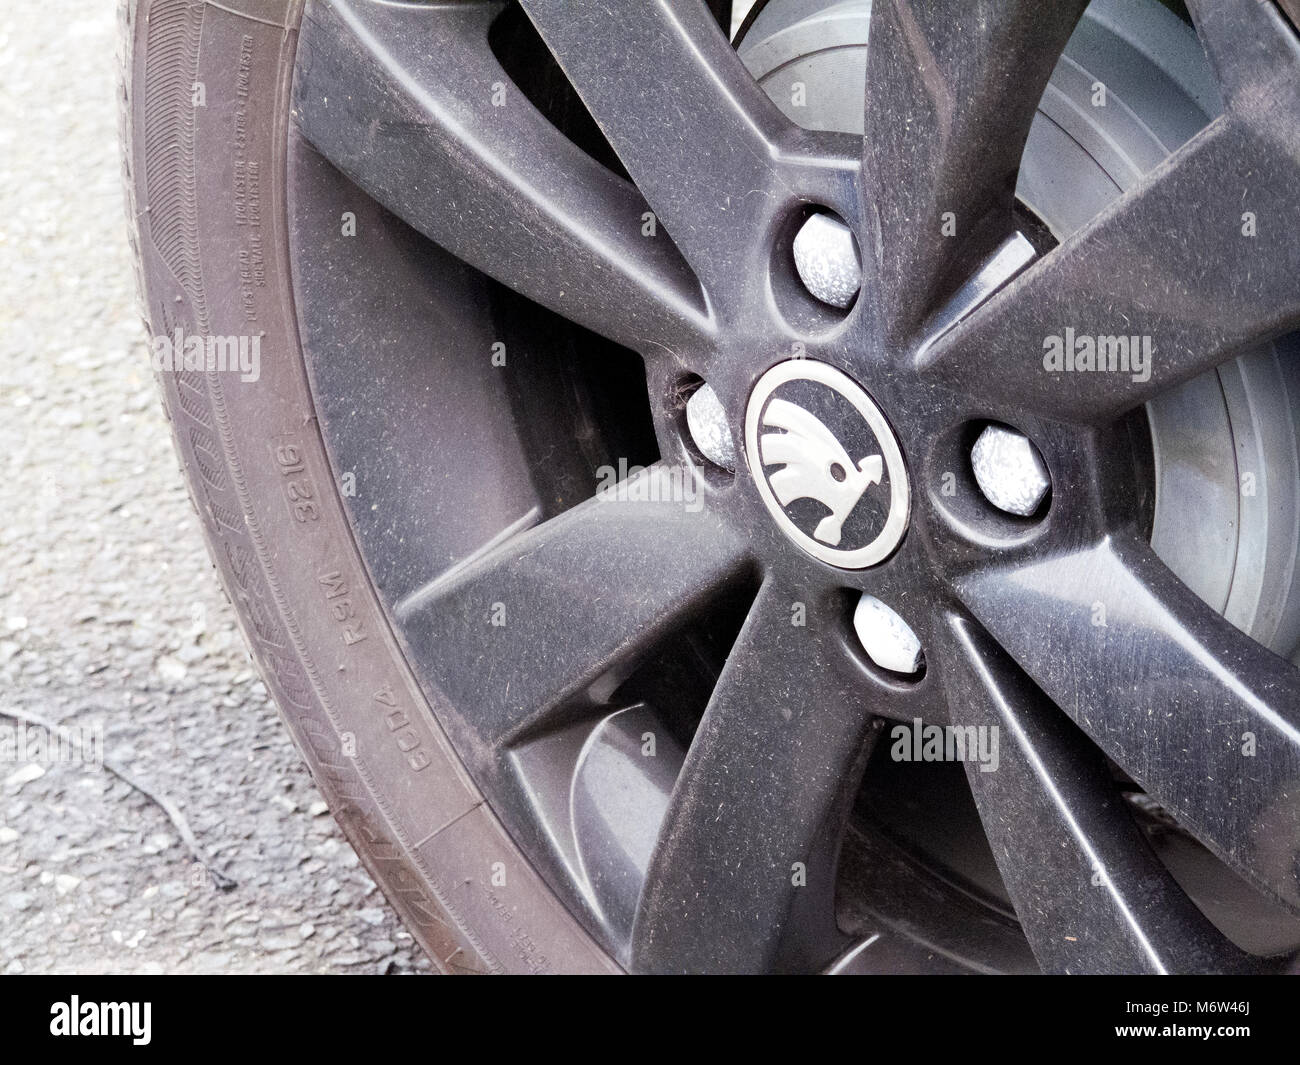 Skoda alloy wheel on four wheel drive vehicle, Czech automobile manufacturer founded in 1895 as Laurin & Klement - Stock Image